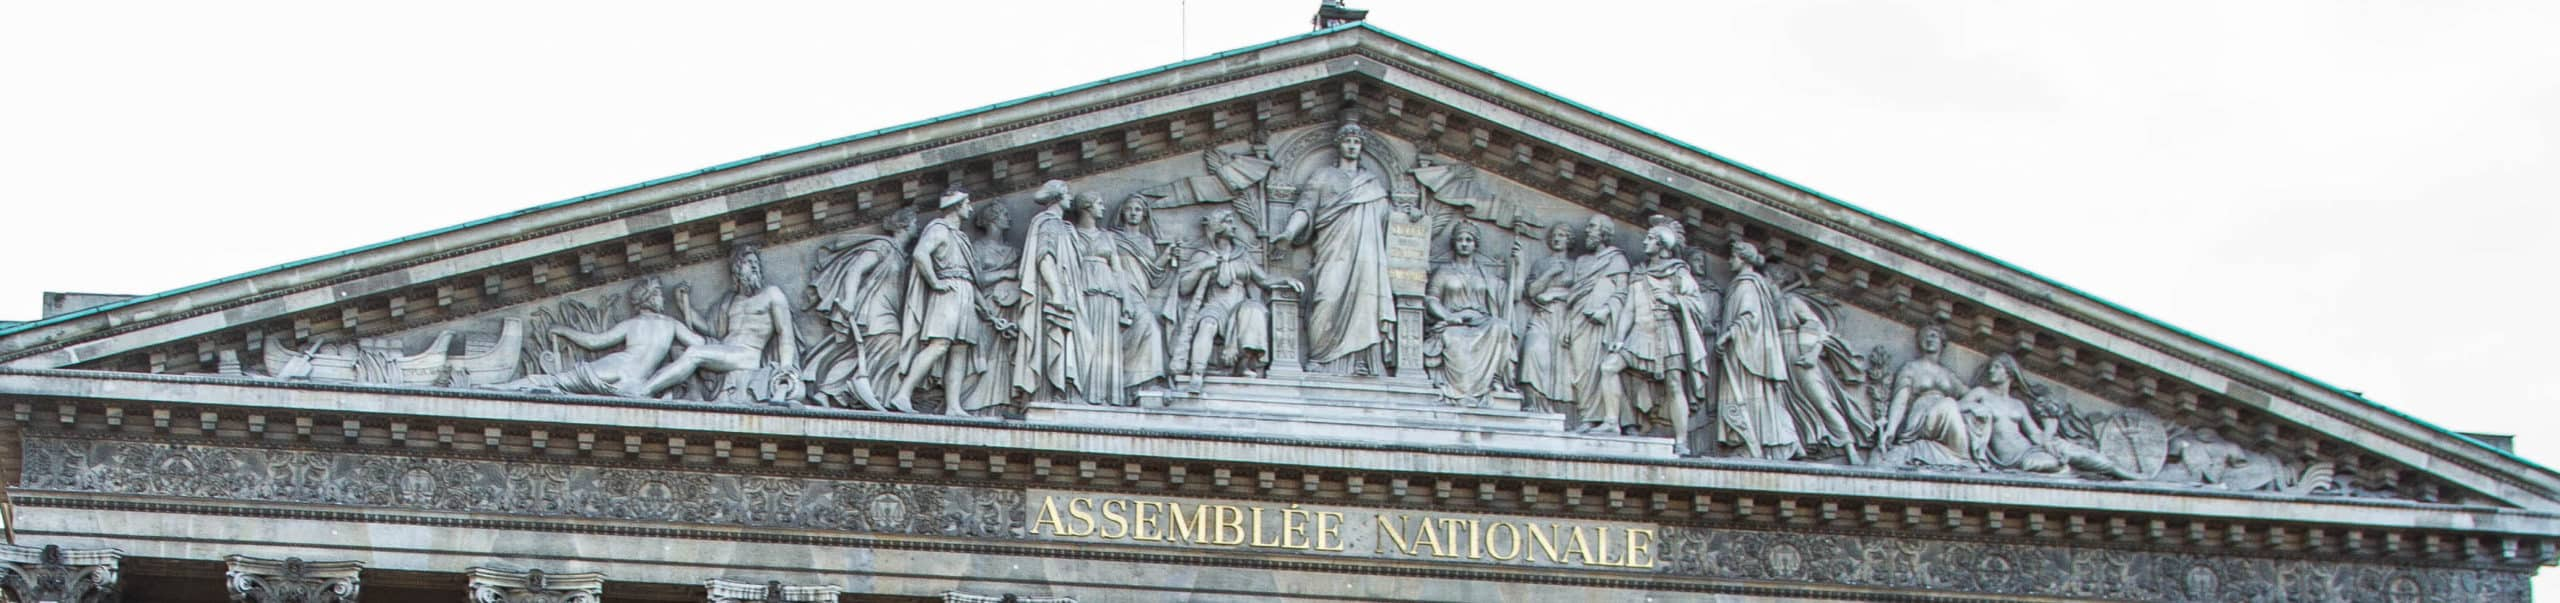 fronton assemblee nationale